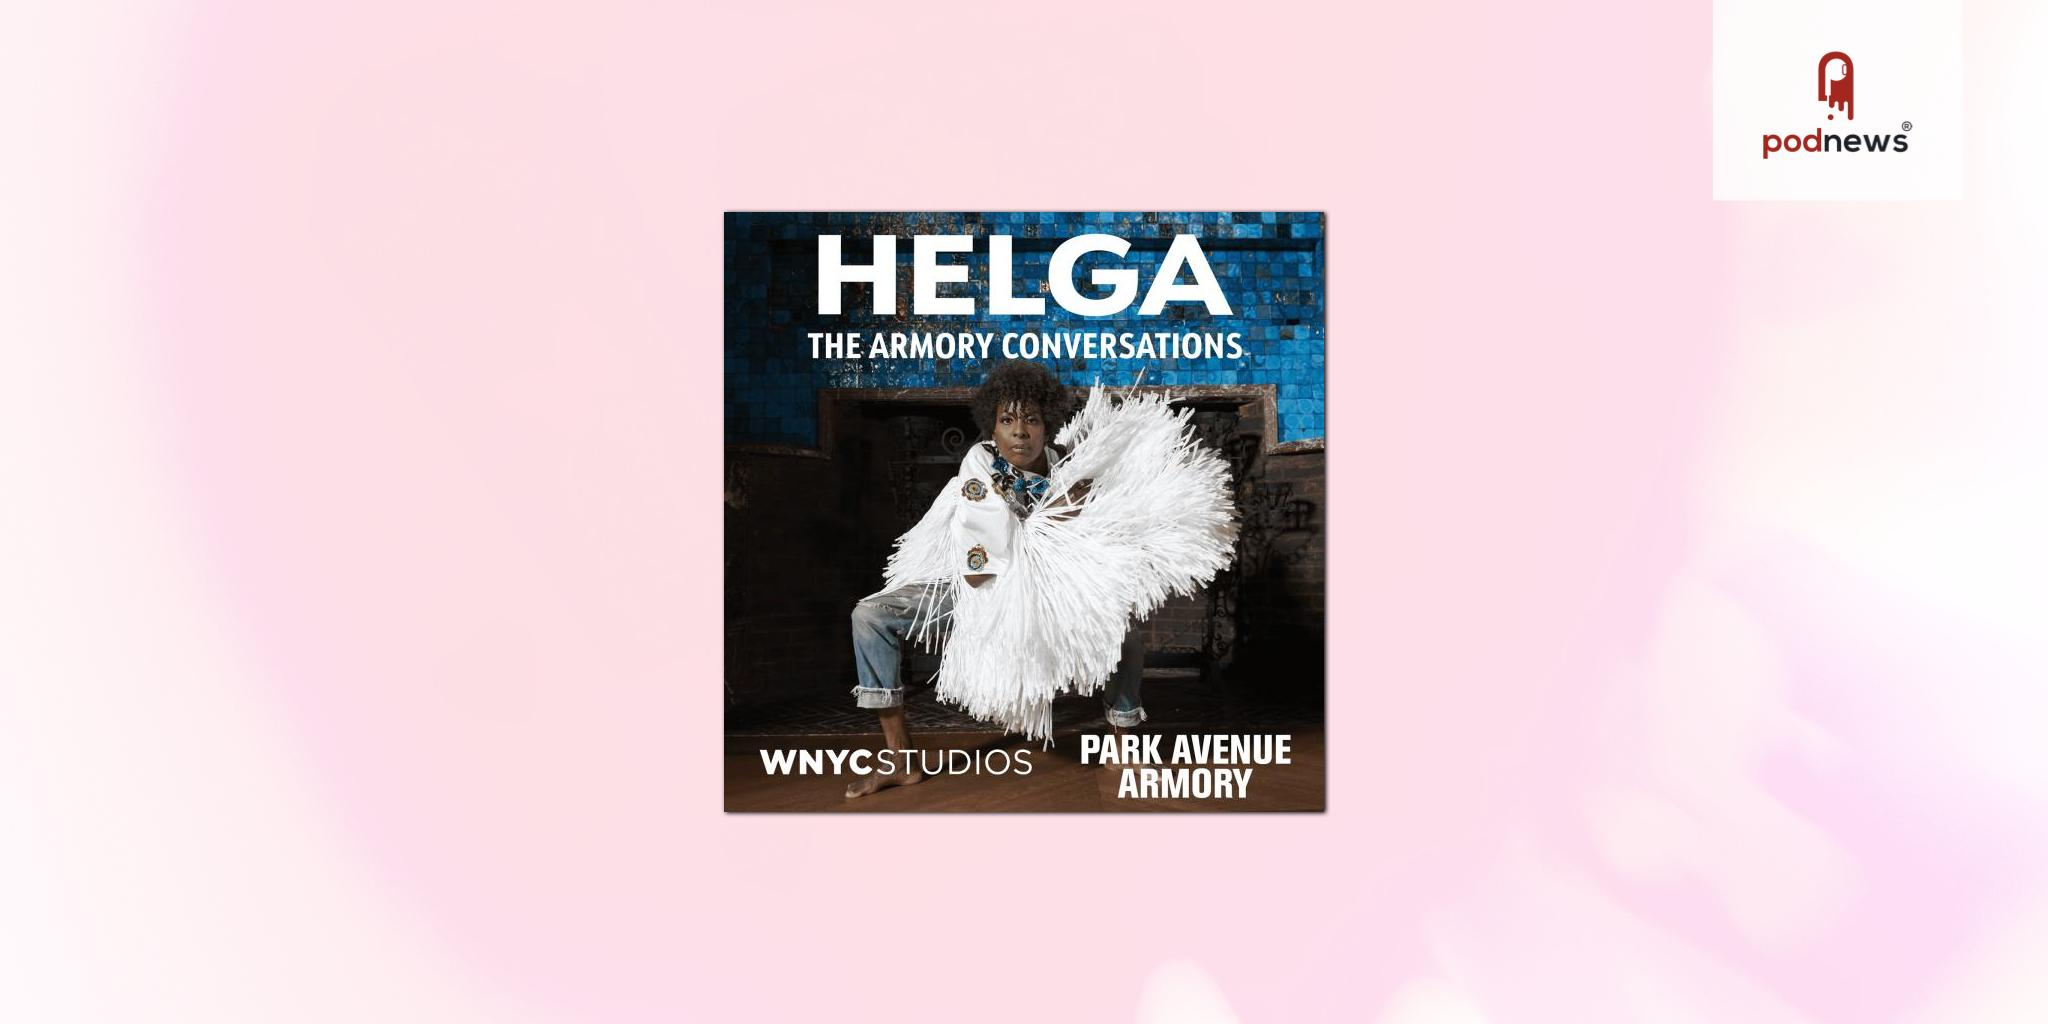 Park Avenue Armory and WQXR and WNYC Studios announce co-production - HELGA: The Armory Conversations